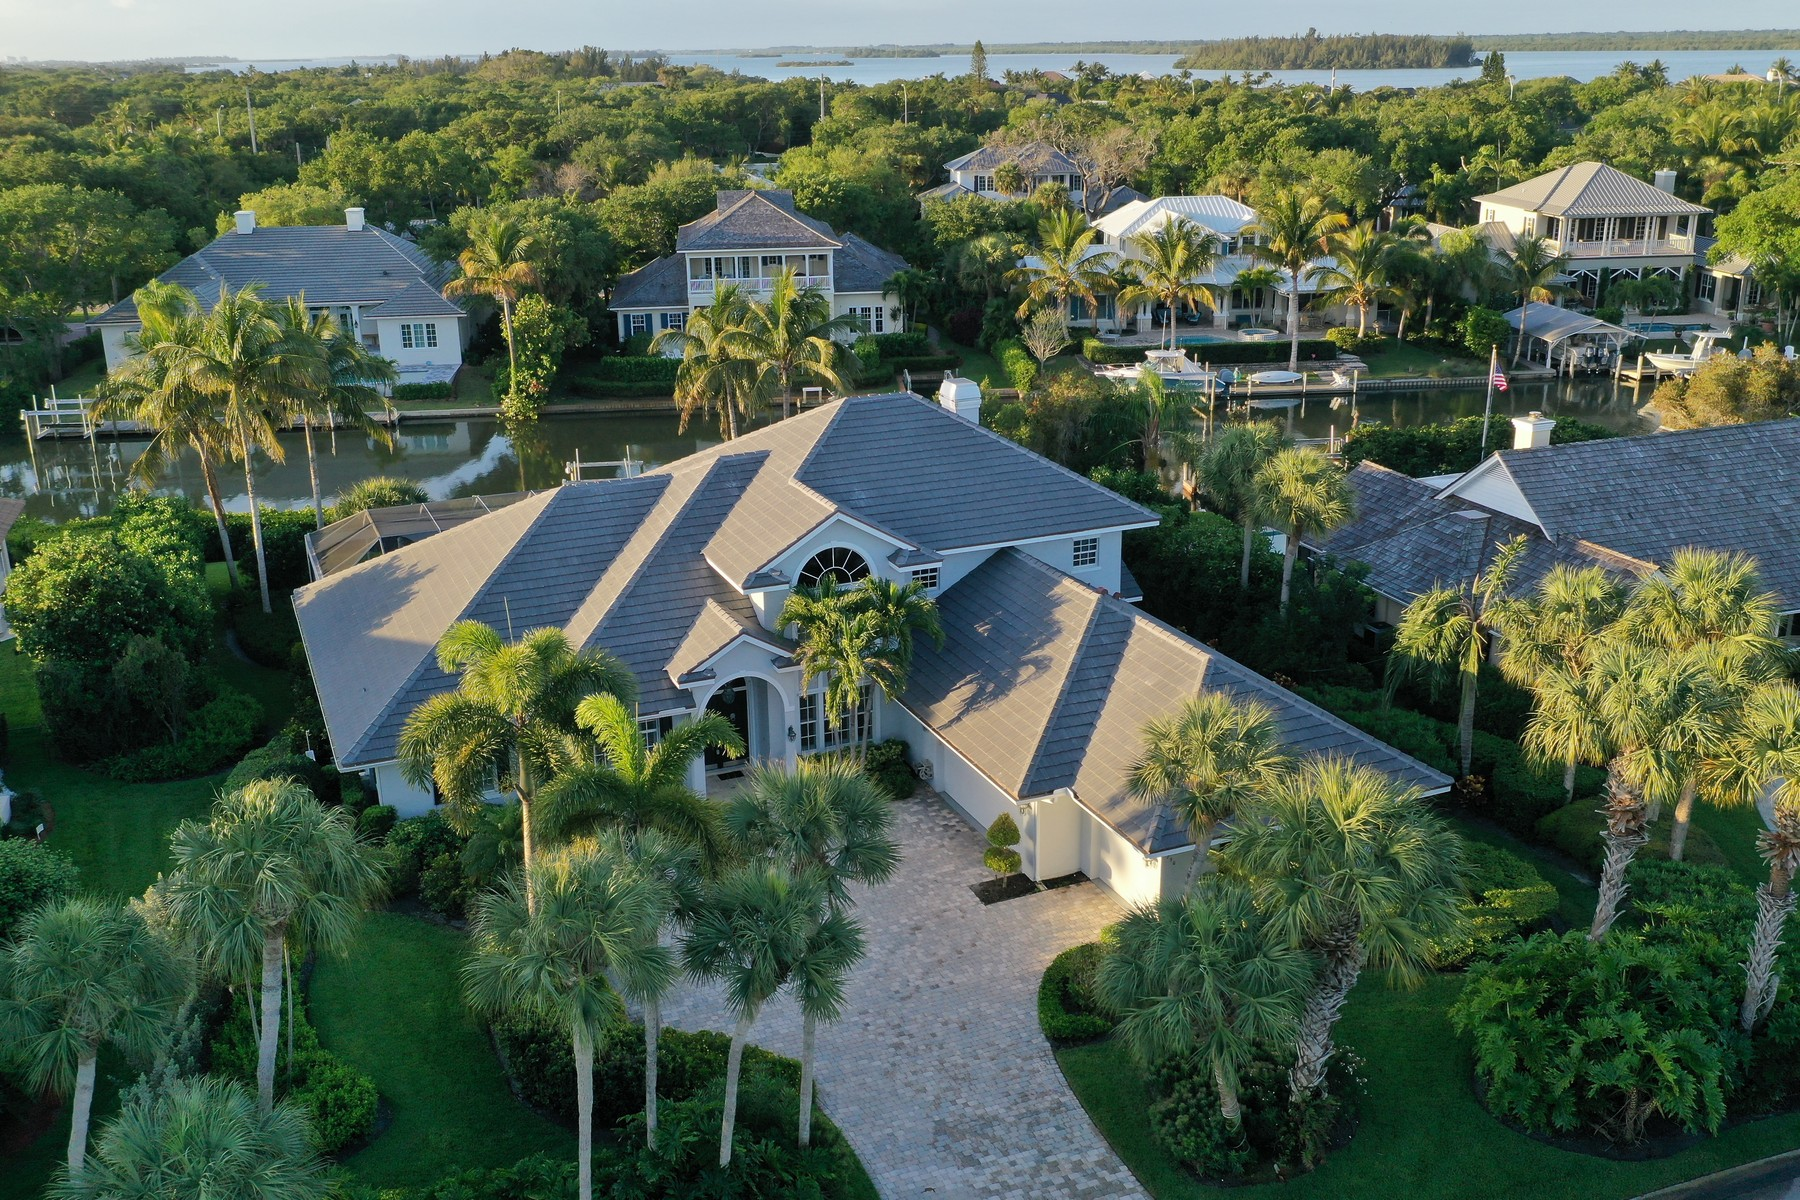 Single Family Homes for Sale at Riverfront, Pool, Gourmet Kitchen, Three Car Garage 730 Lagoon Rd Vero Beach, Florida 32963 United States